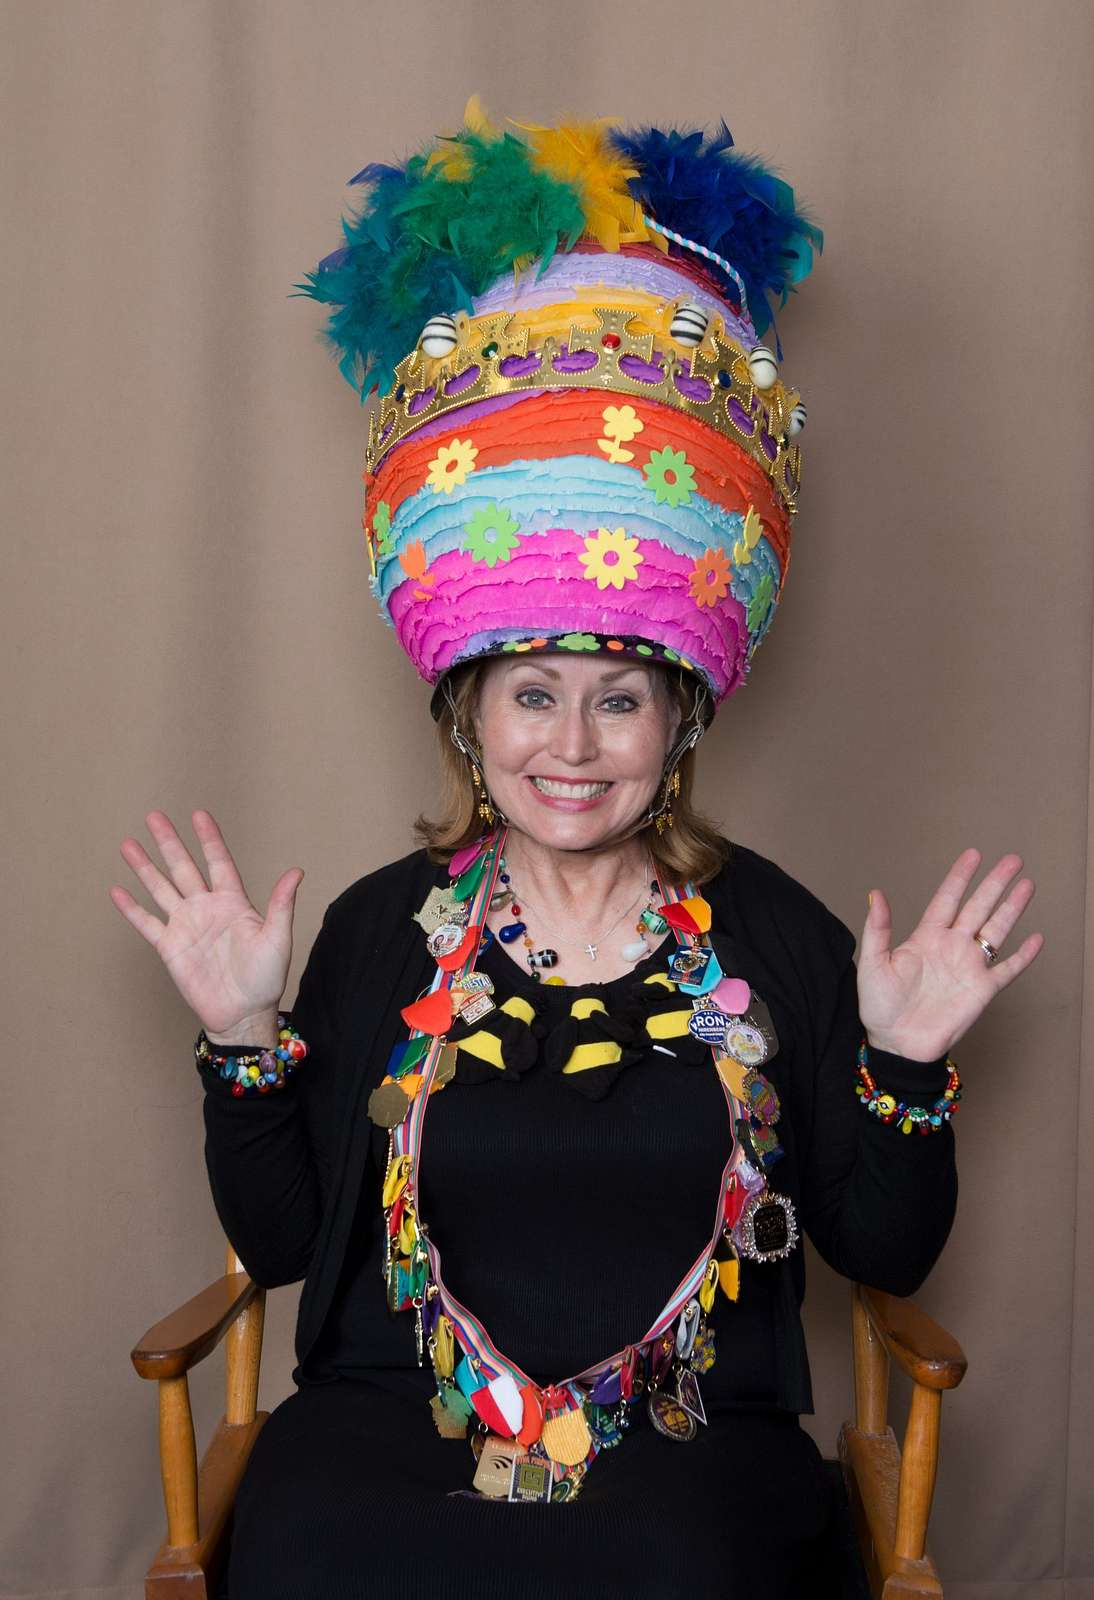 """Cindy Njegovan Comfort of San Antonio, models her creation exhibited in the """"Hats Off to Fiesta!"""" event, sponsored by the university's Institute of Texan Cultures, as part of the month-long San Antonio, Texas, Fiesta celebration"""